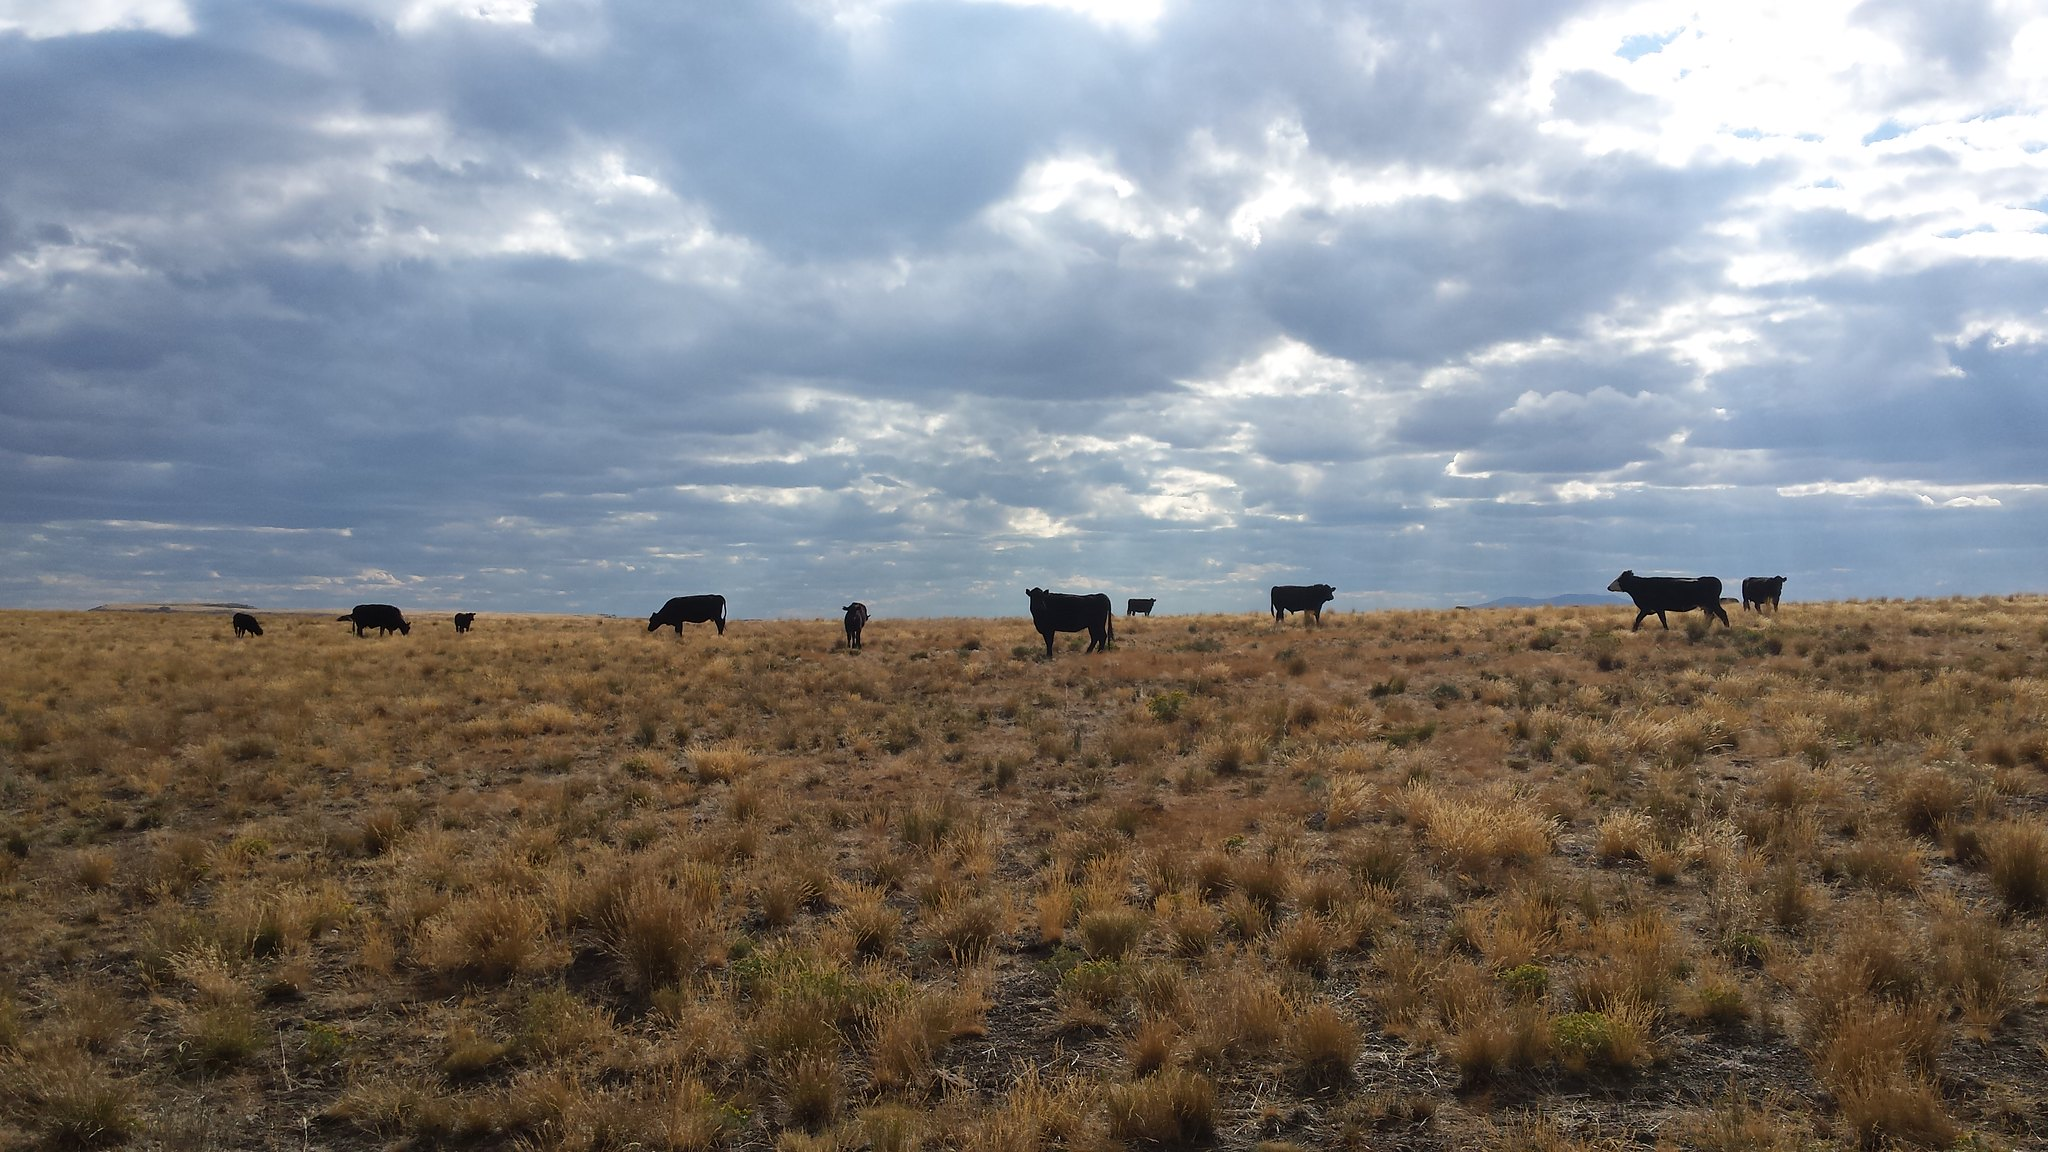 Cattle graze near the Trout Creek Mountains in southeastern Oregon